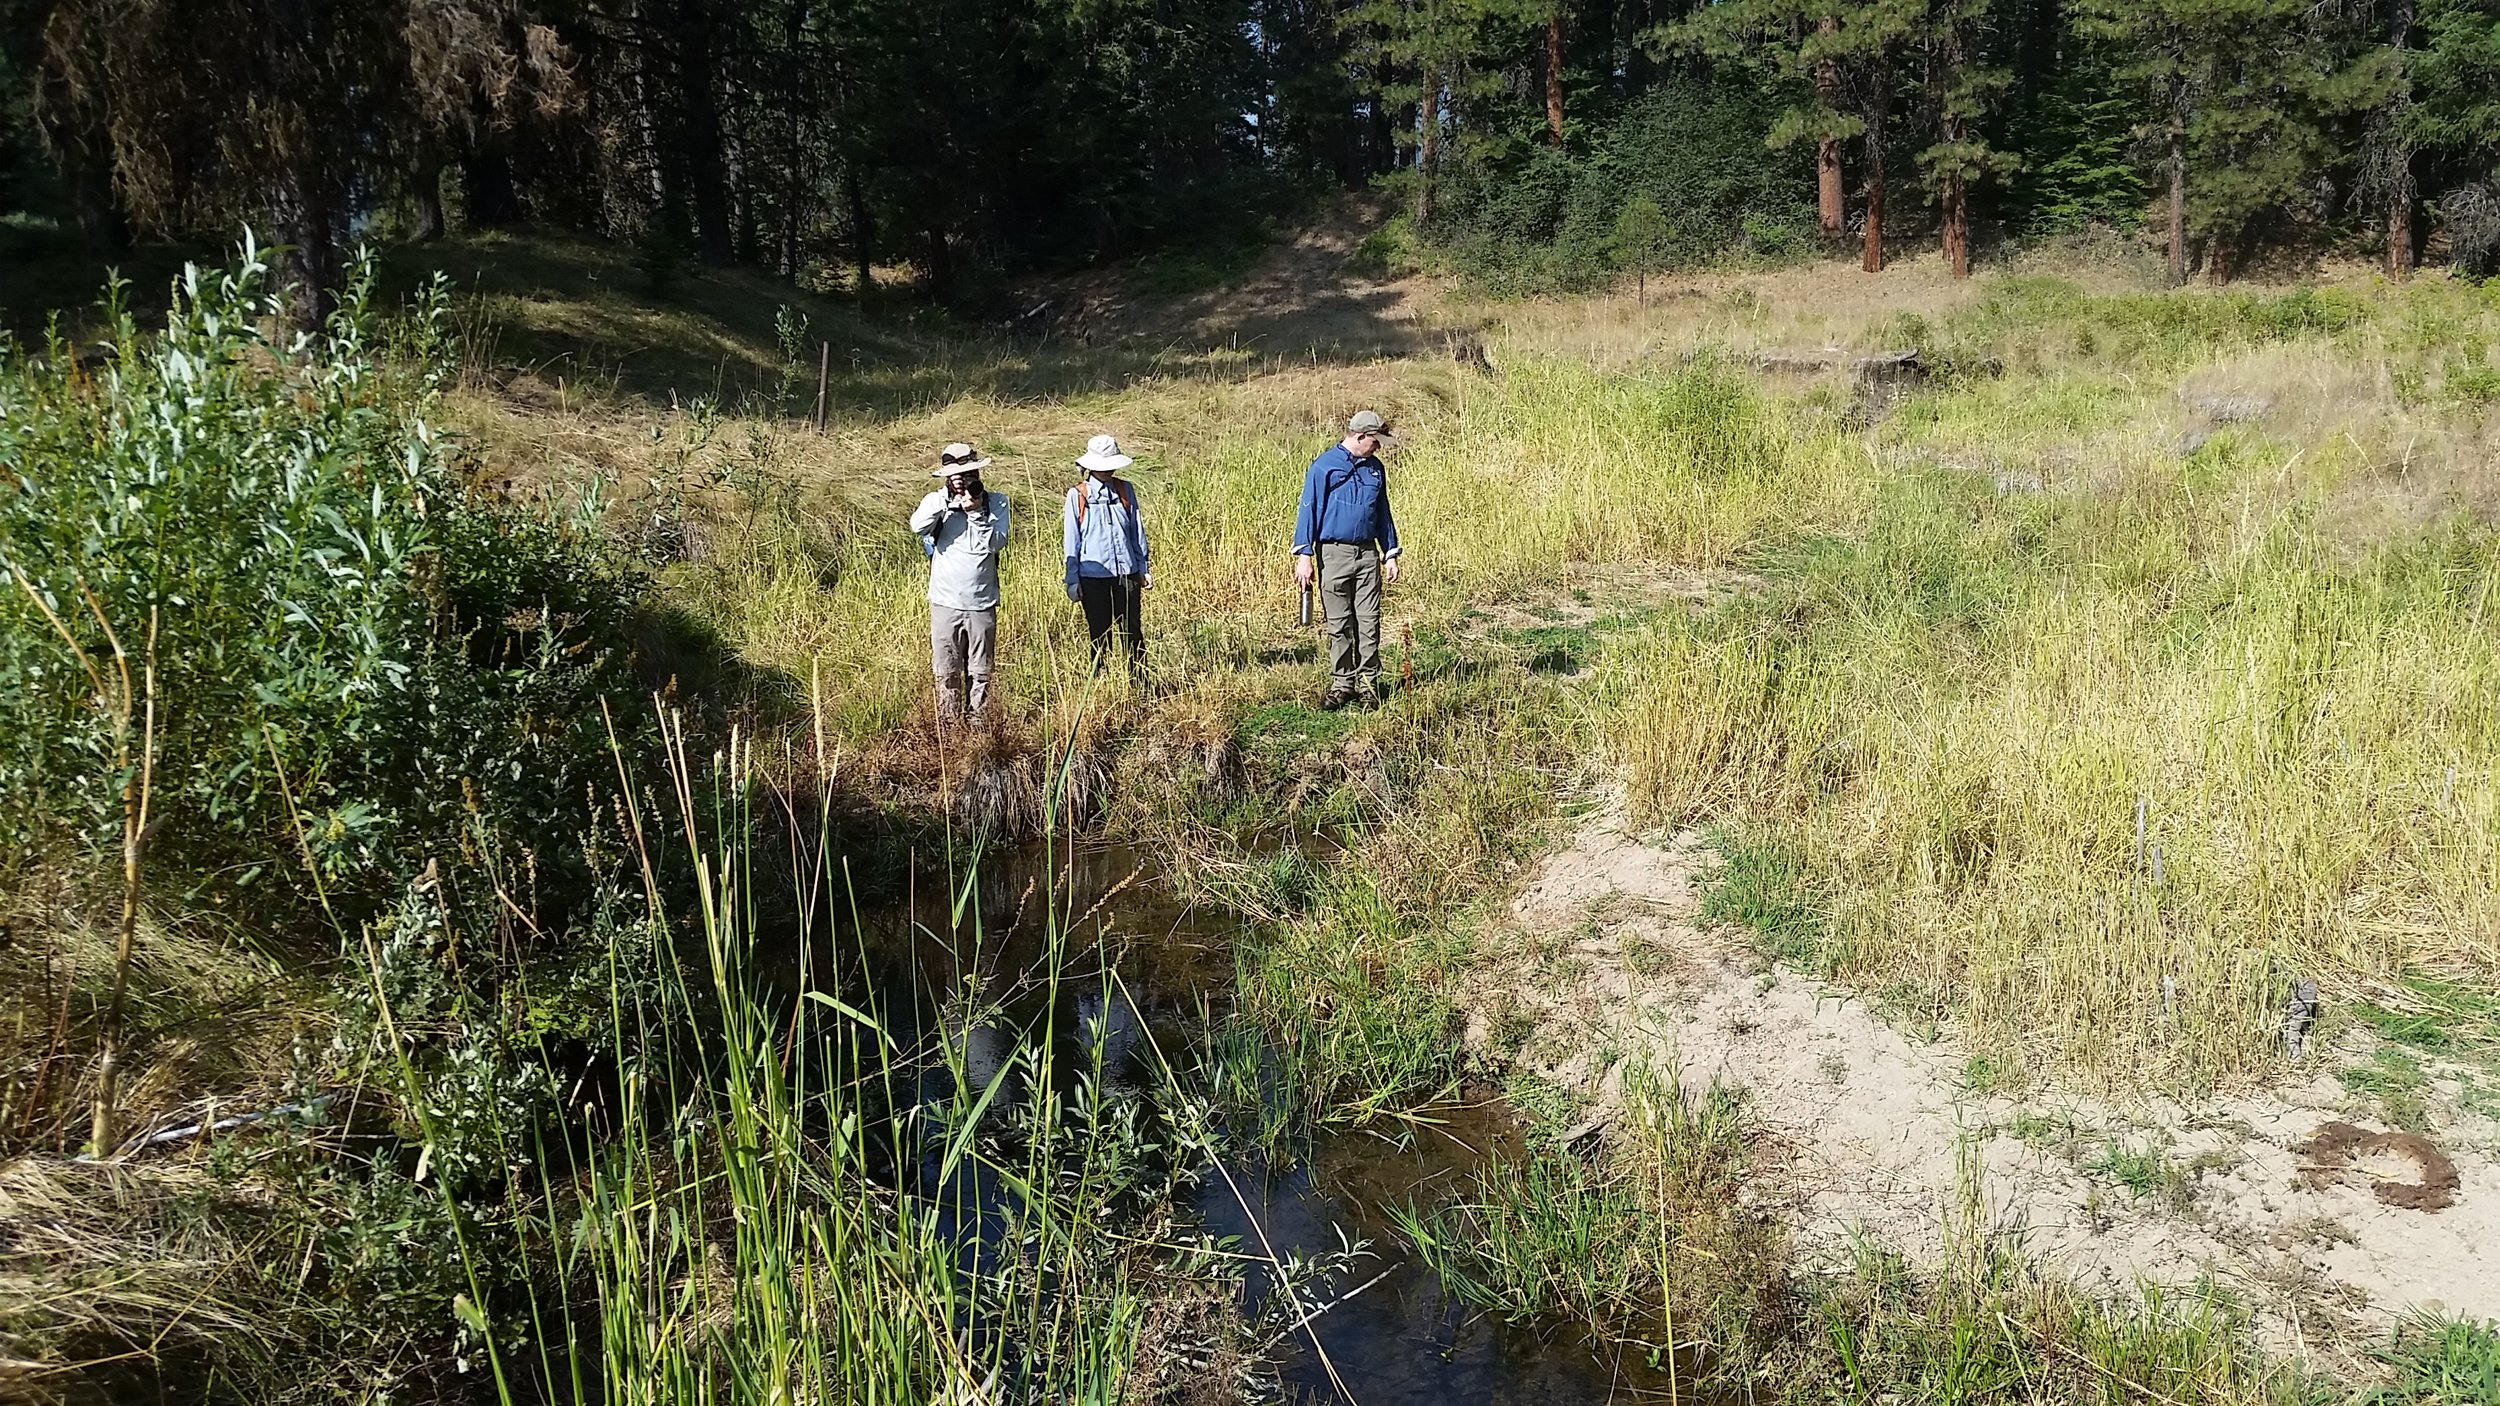 Creek and water quality surveying with the public - To study the biodiversity of the creek, and understand the health of the water, initial surveys were made in 2018 prior to any restoration efforts. Baseline information was collected on three biotic components of the meadow prior to restoration 1.) stream morphology 2.) macroinvertebrate community structure as an indication of stream habitat integrity 3.) and water quality. Read about Crystal Nichols's research on our blog!